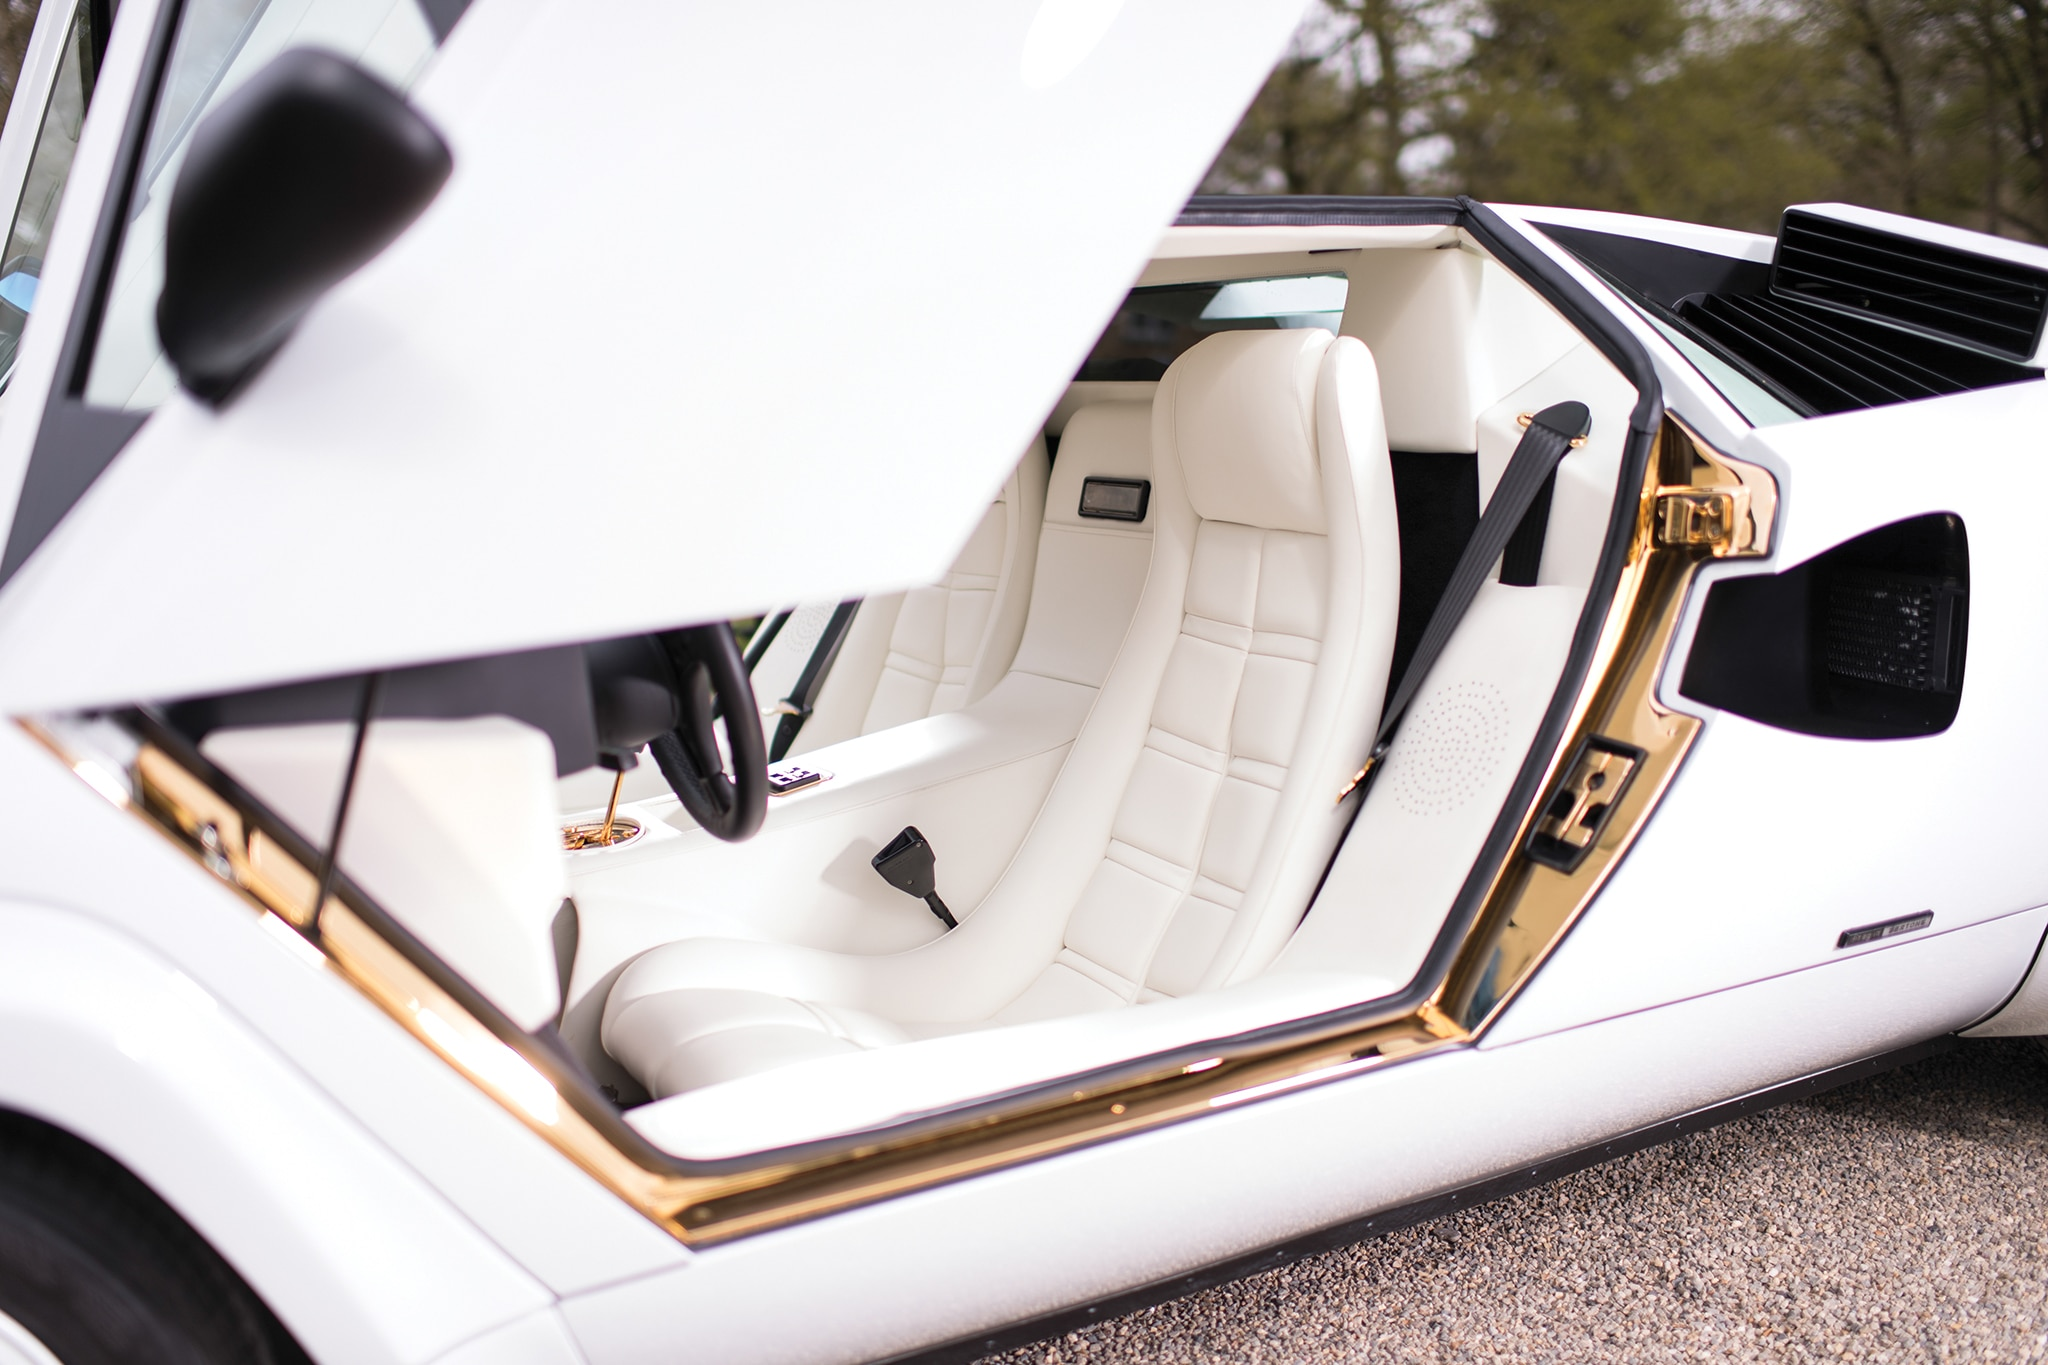 Gold Plated Lamborghini In Islamabad Car Review And Gallery